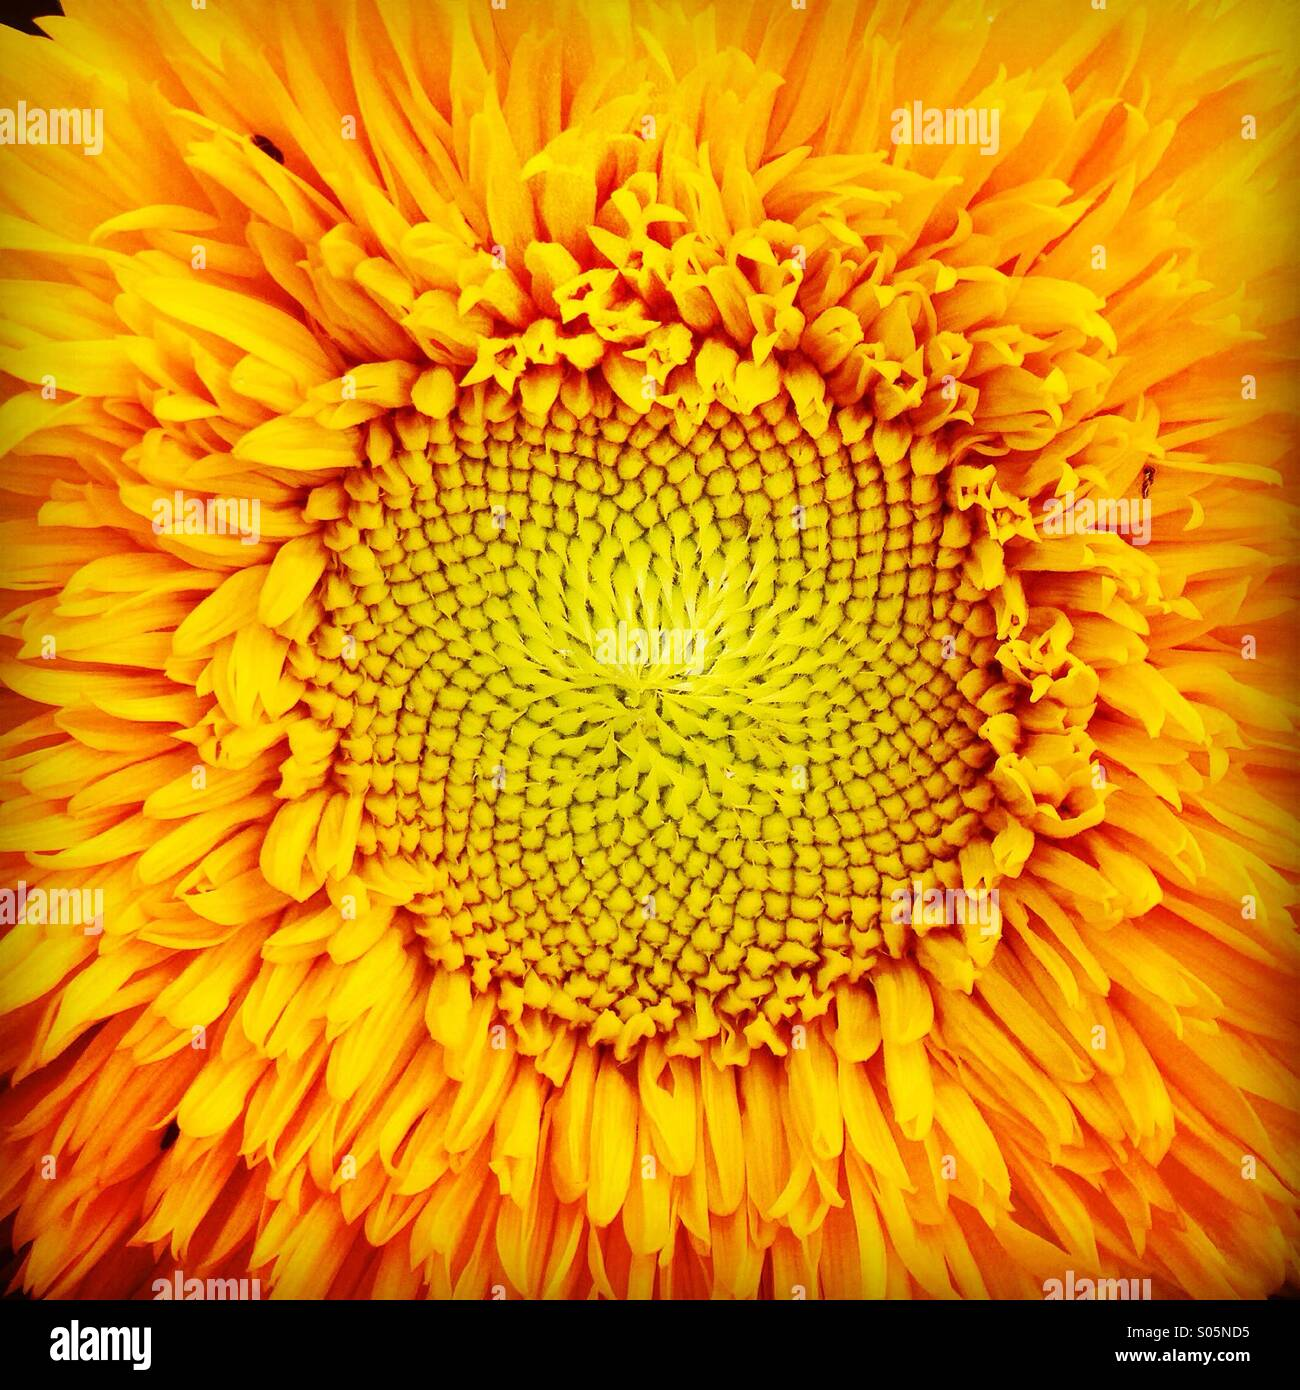 Orange sunflower close up showing yellow seed heads vibrant - Stock Image